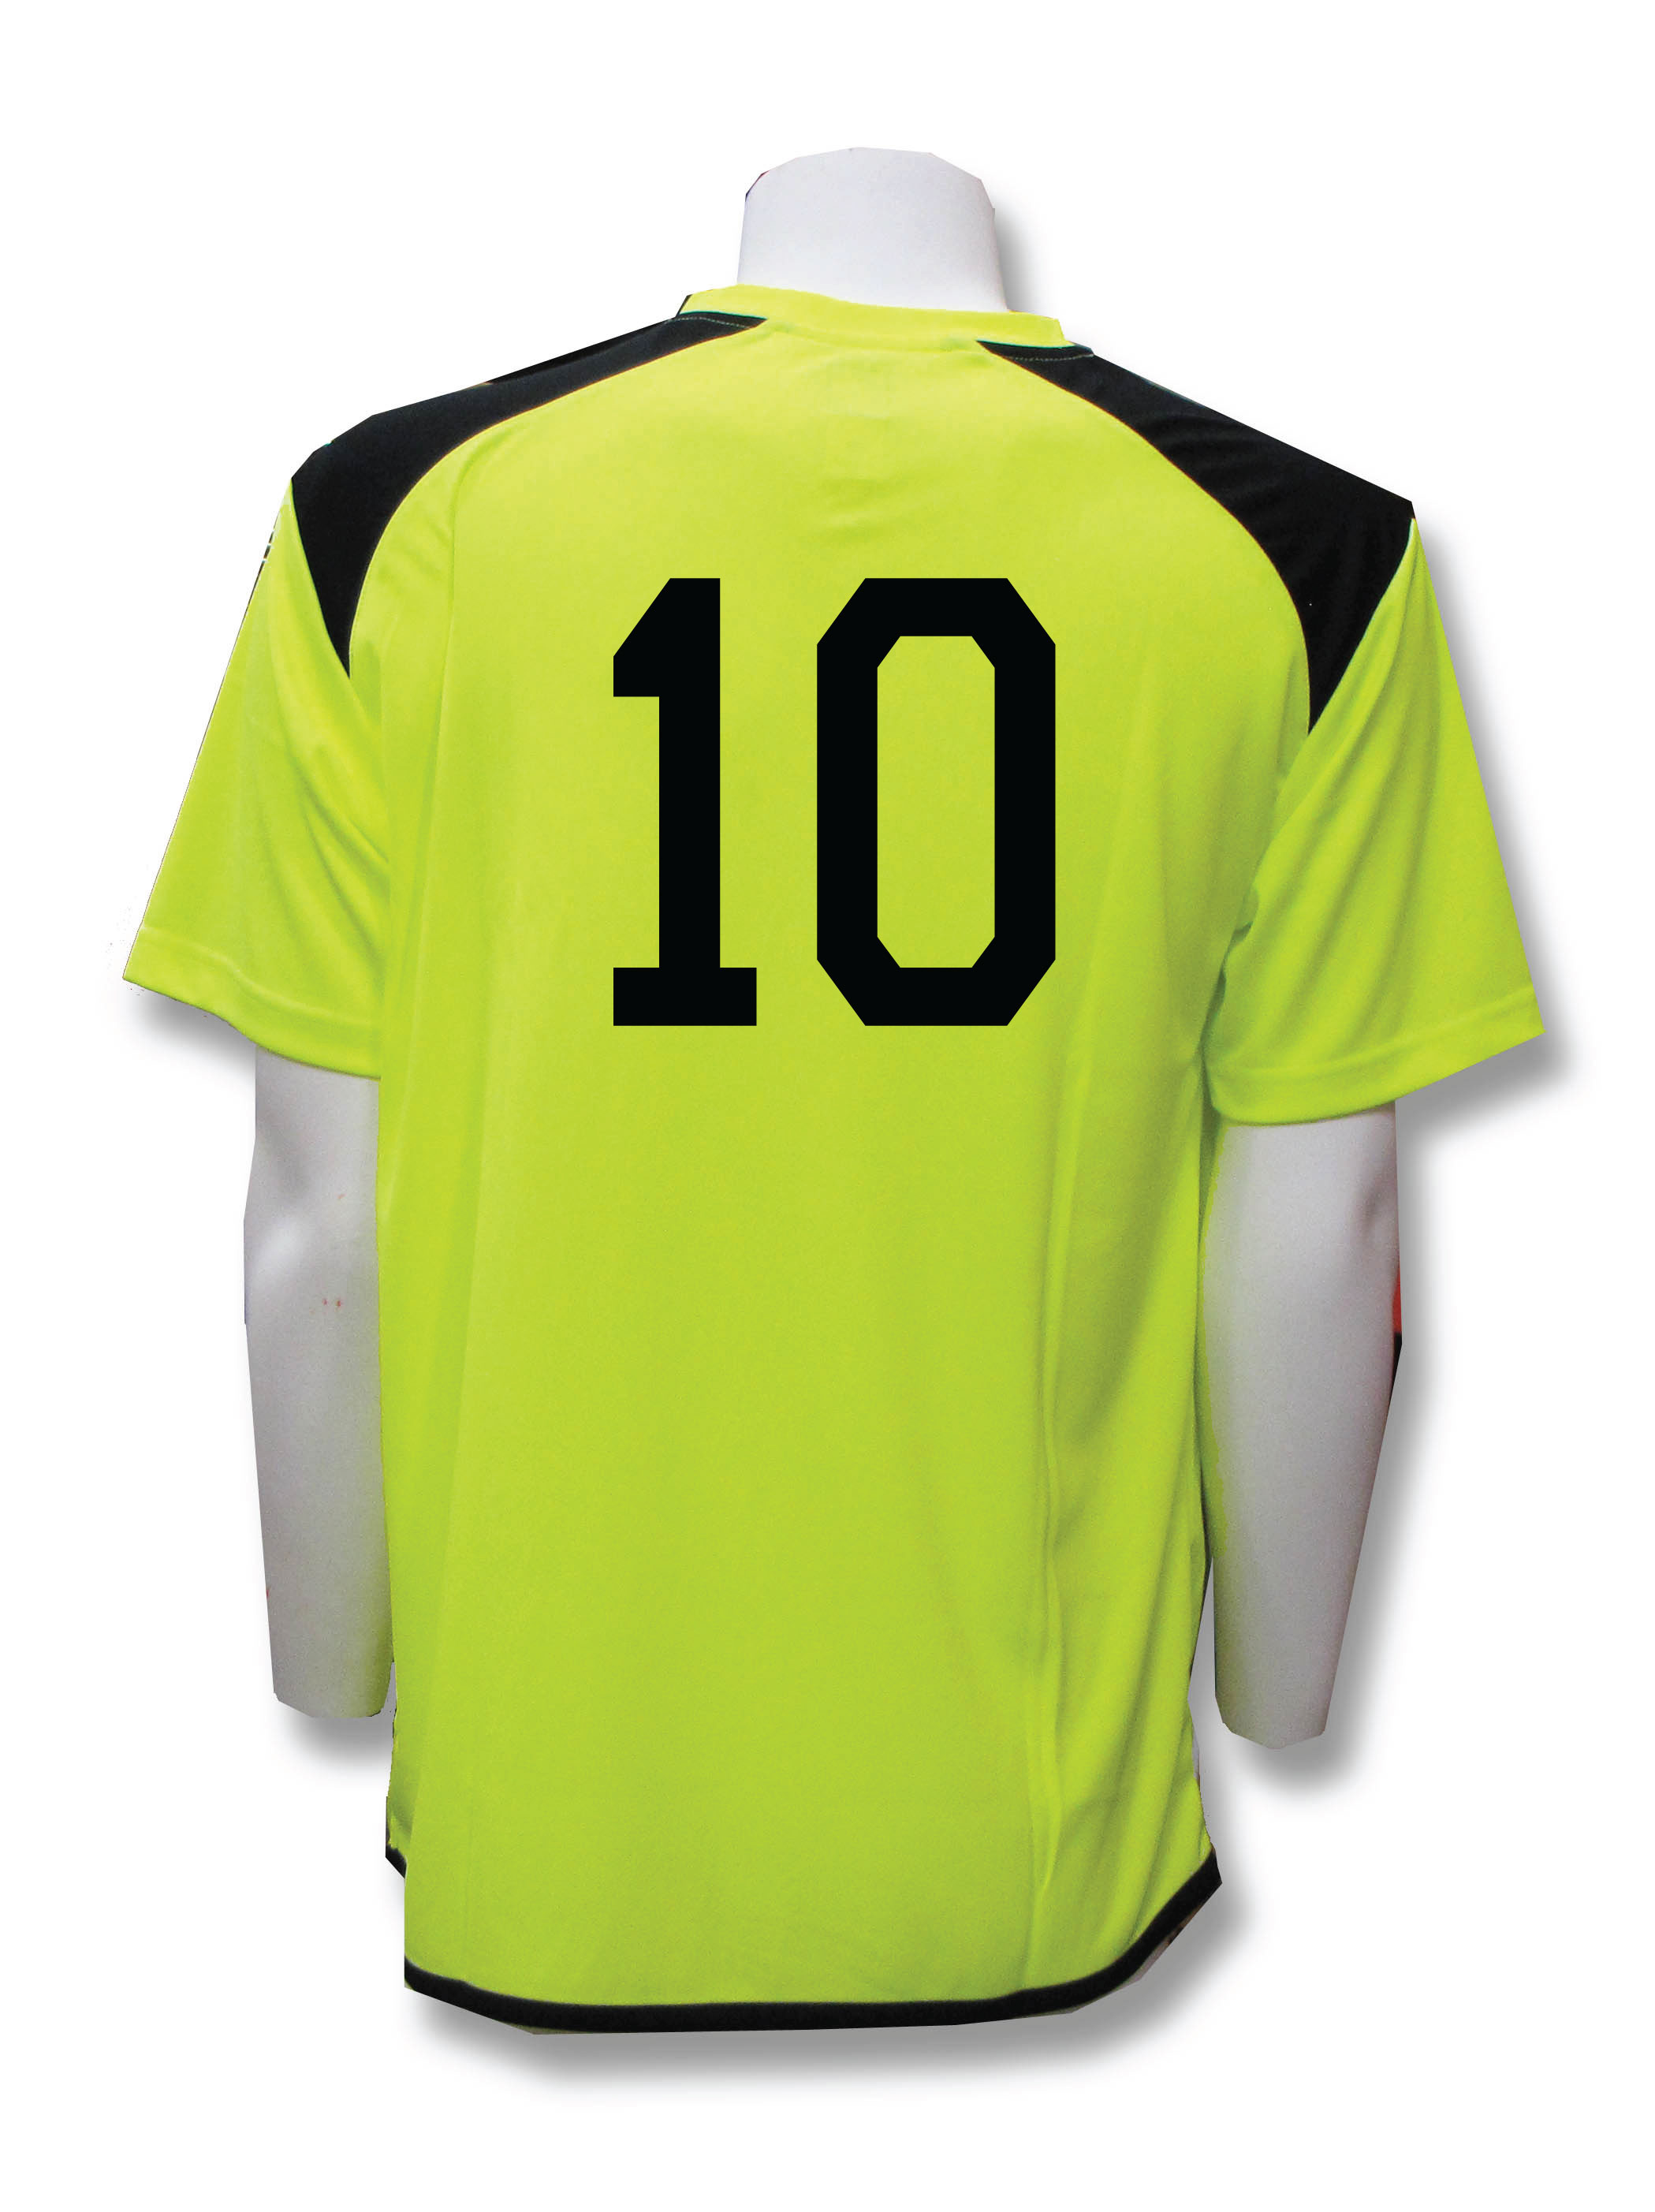 Diadora Grinta soccer jersey with number by Code Four Athletis